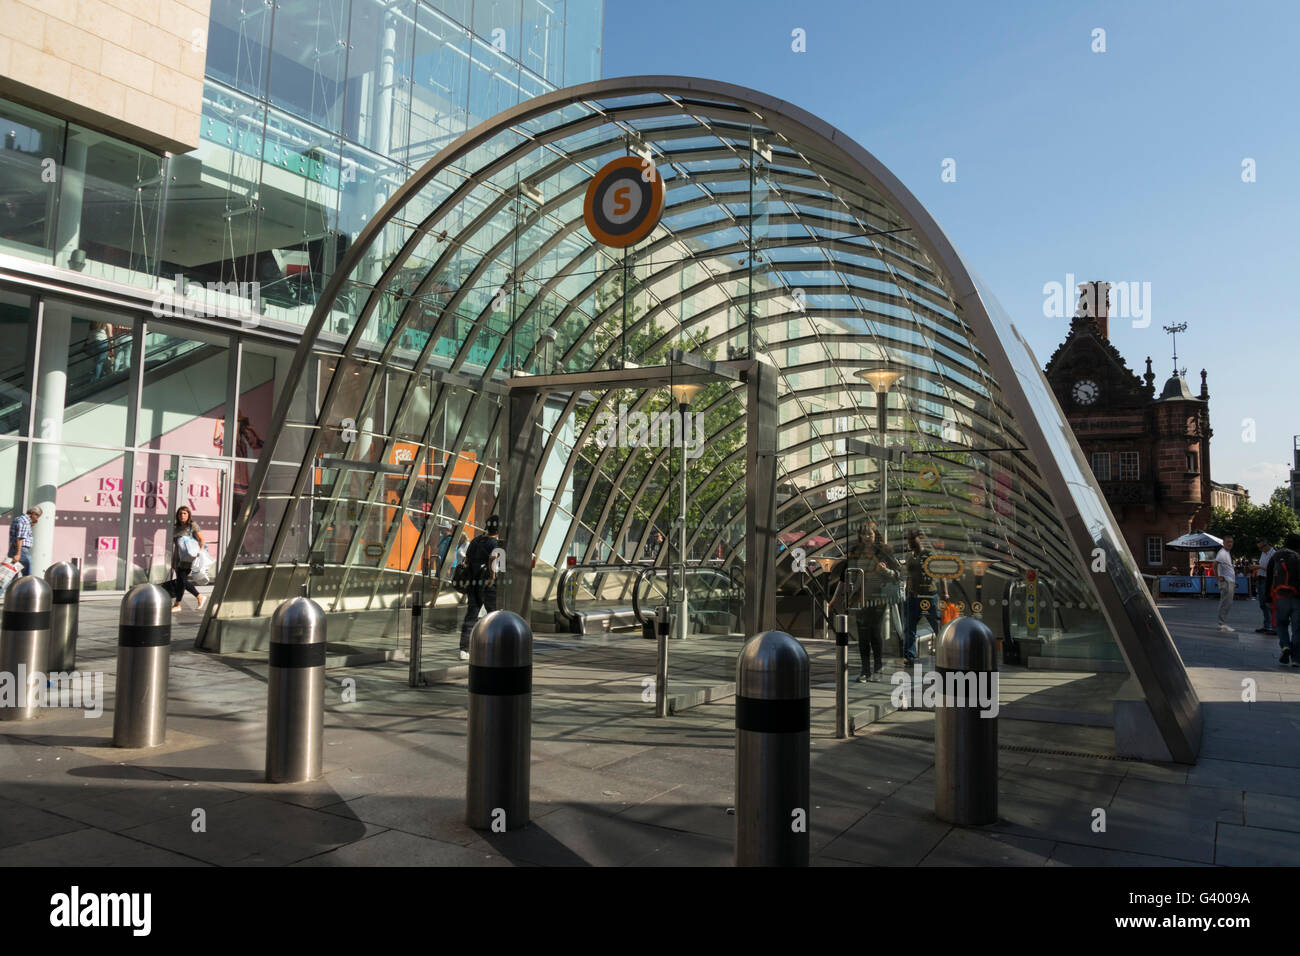 Subway entrance, St Enoch Square,Glasgow,Scotland, UK, - Stock Image